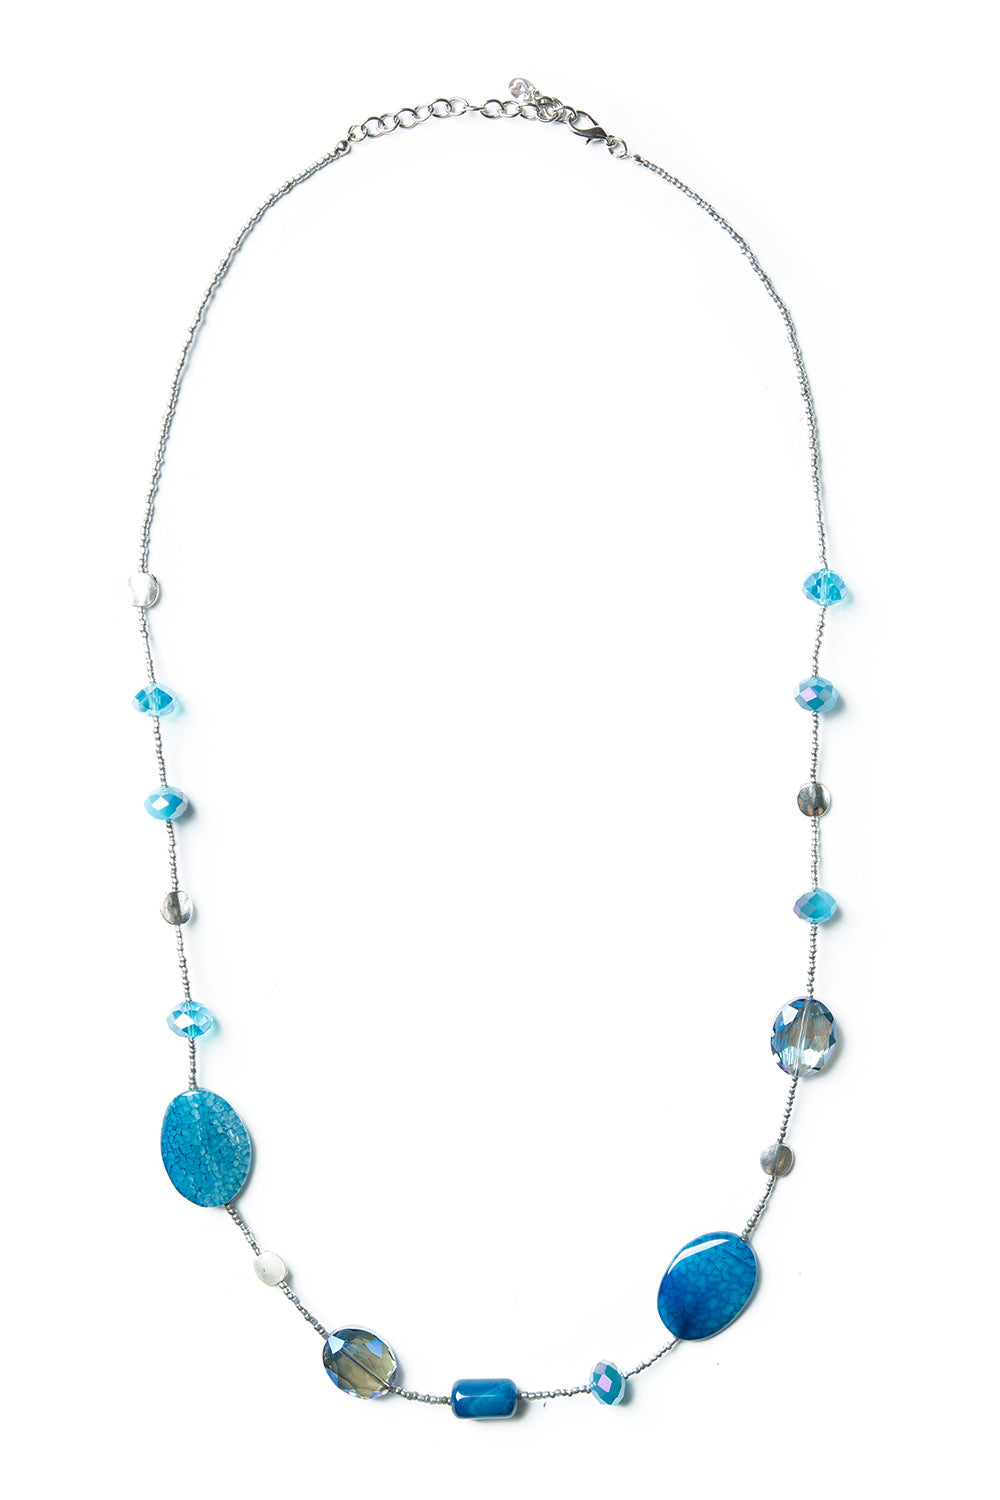 Type 2 Blue Trailing Silver Necklace